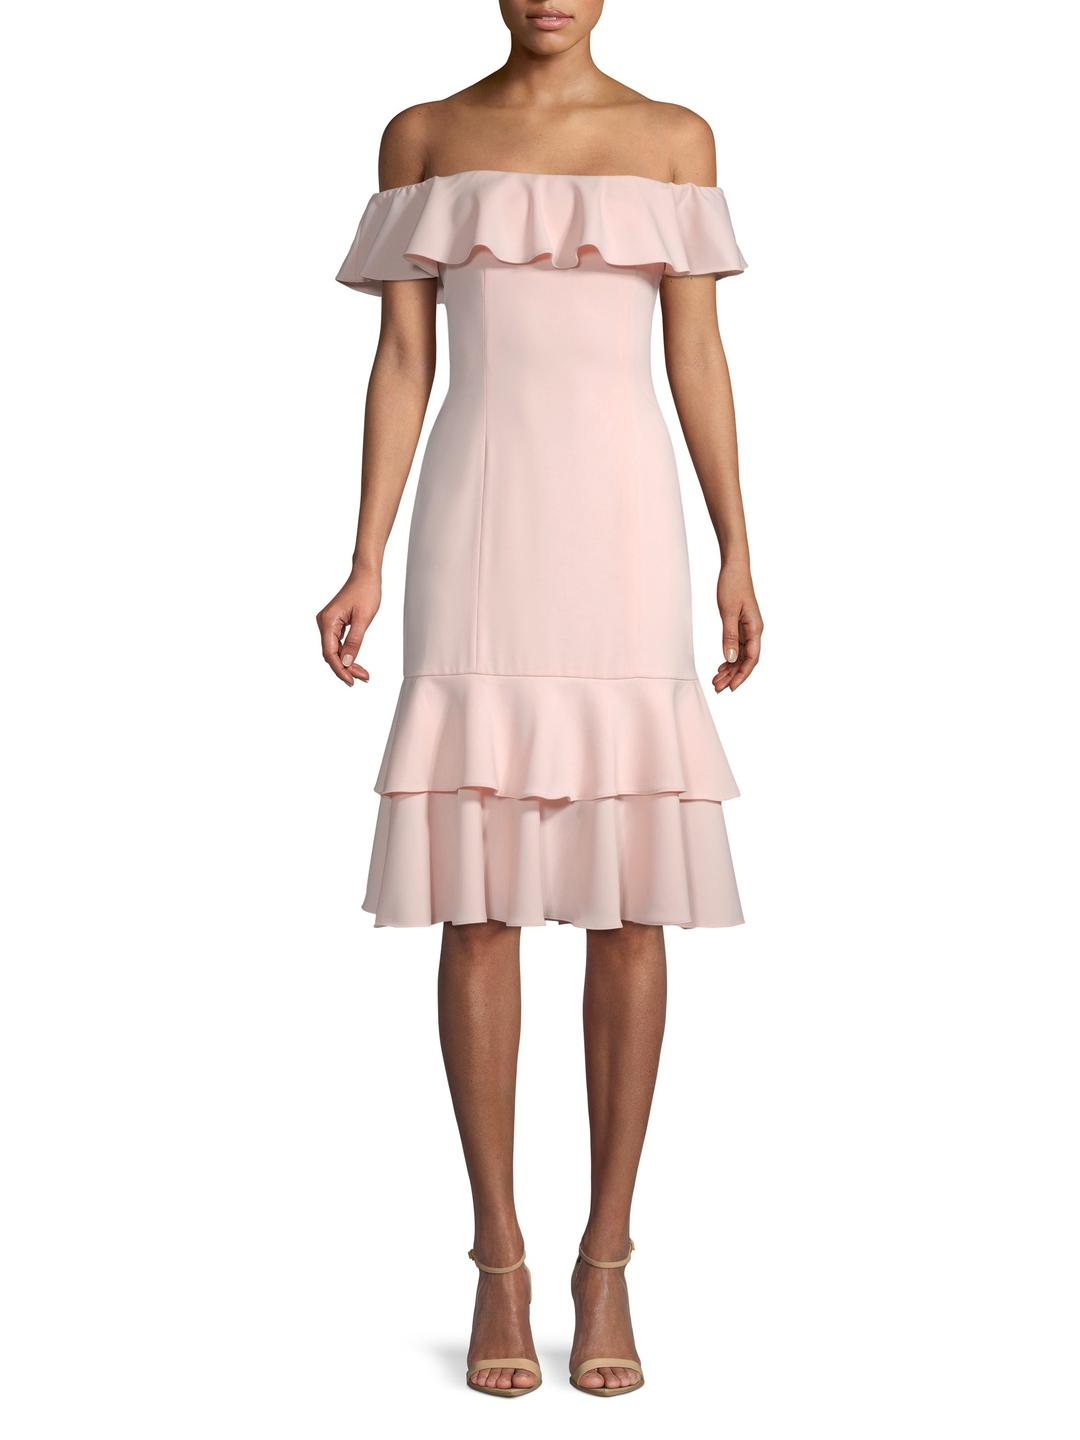 69e69980a5687 Lyst - Jay Godfrey Off-the-shoulder Ruffle Dress in Pink